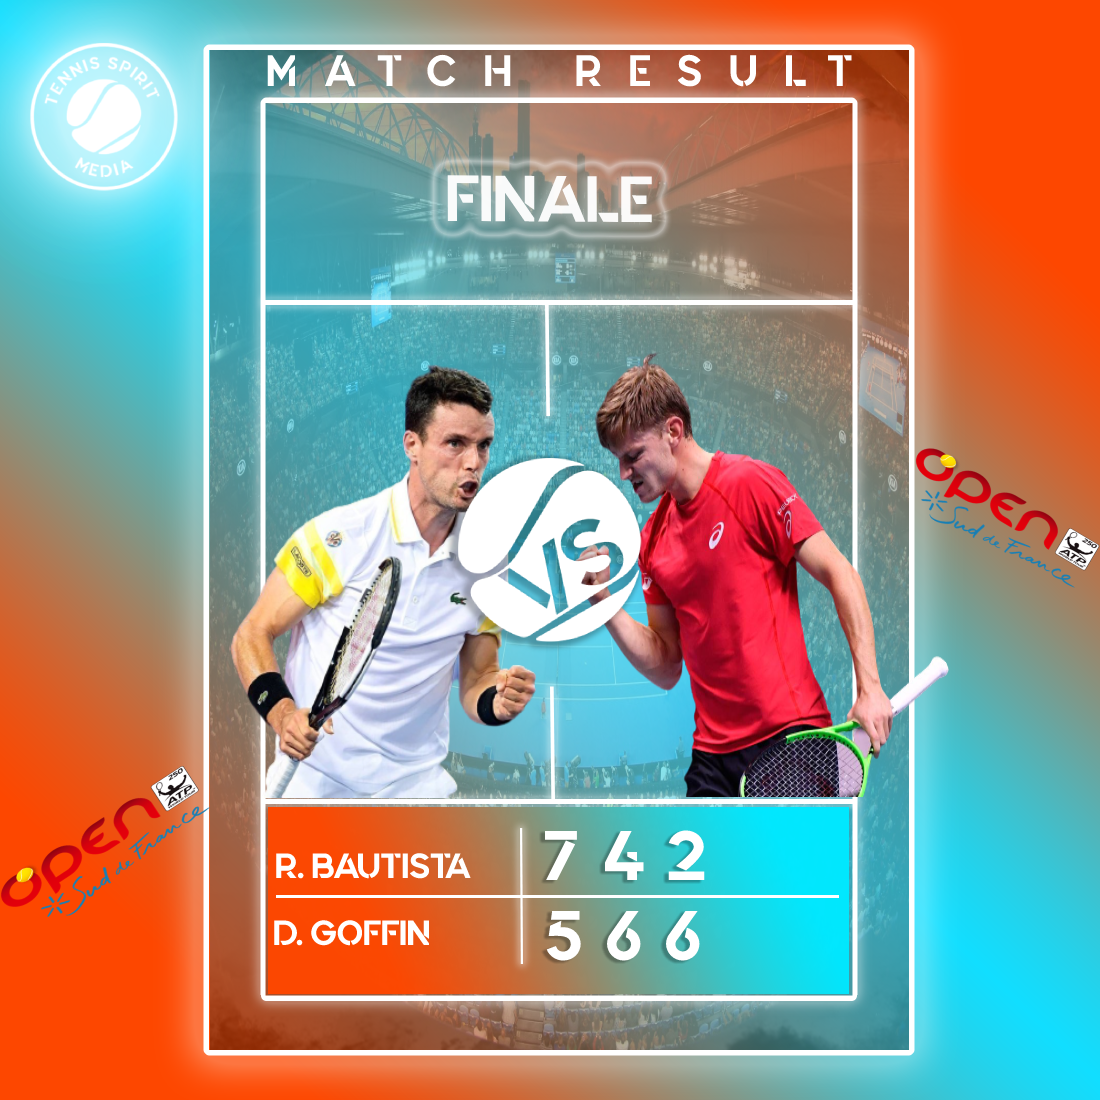 Match-Result-Tournois-Open-Sud-France-Montpellier-2021-David-Goffin-Bautista-RobertoTennis-Spirit-Media-Actu-Info-Direct-Live-Score